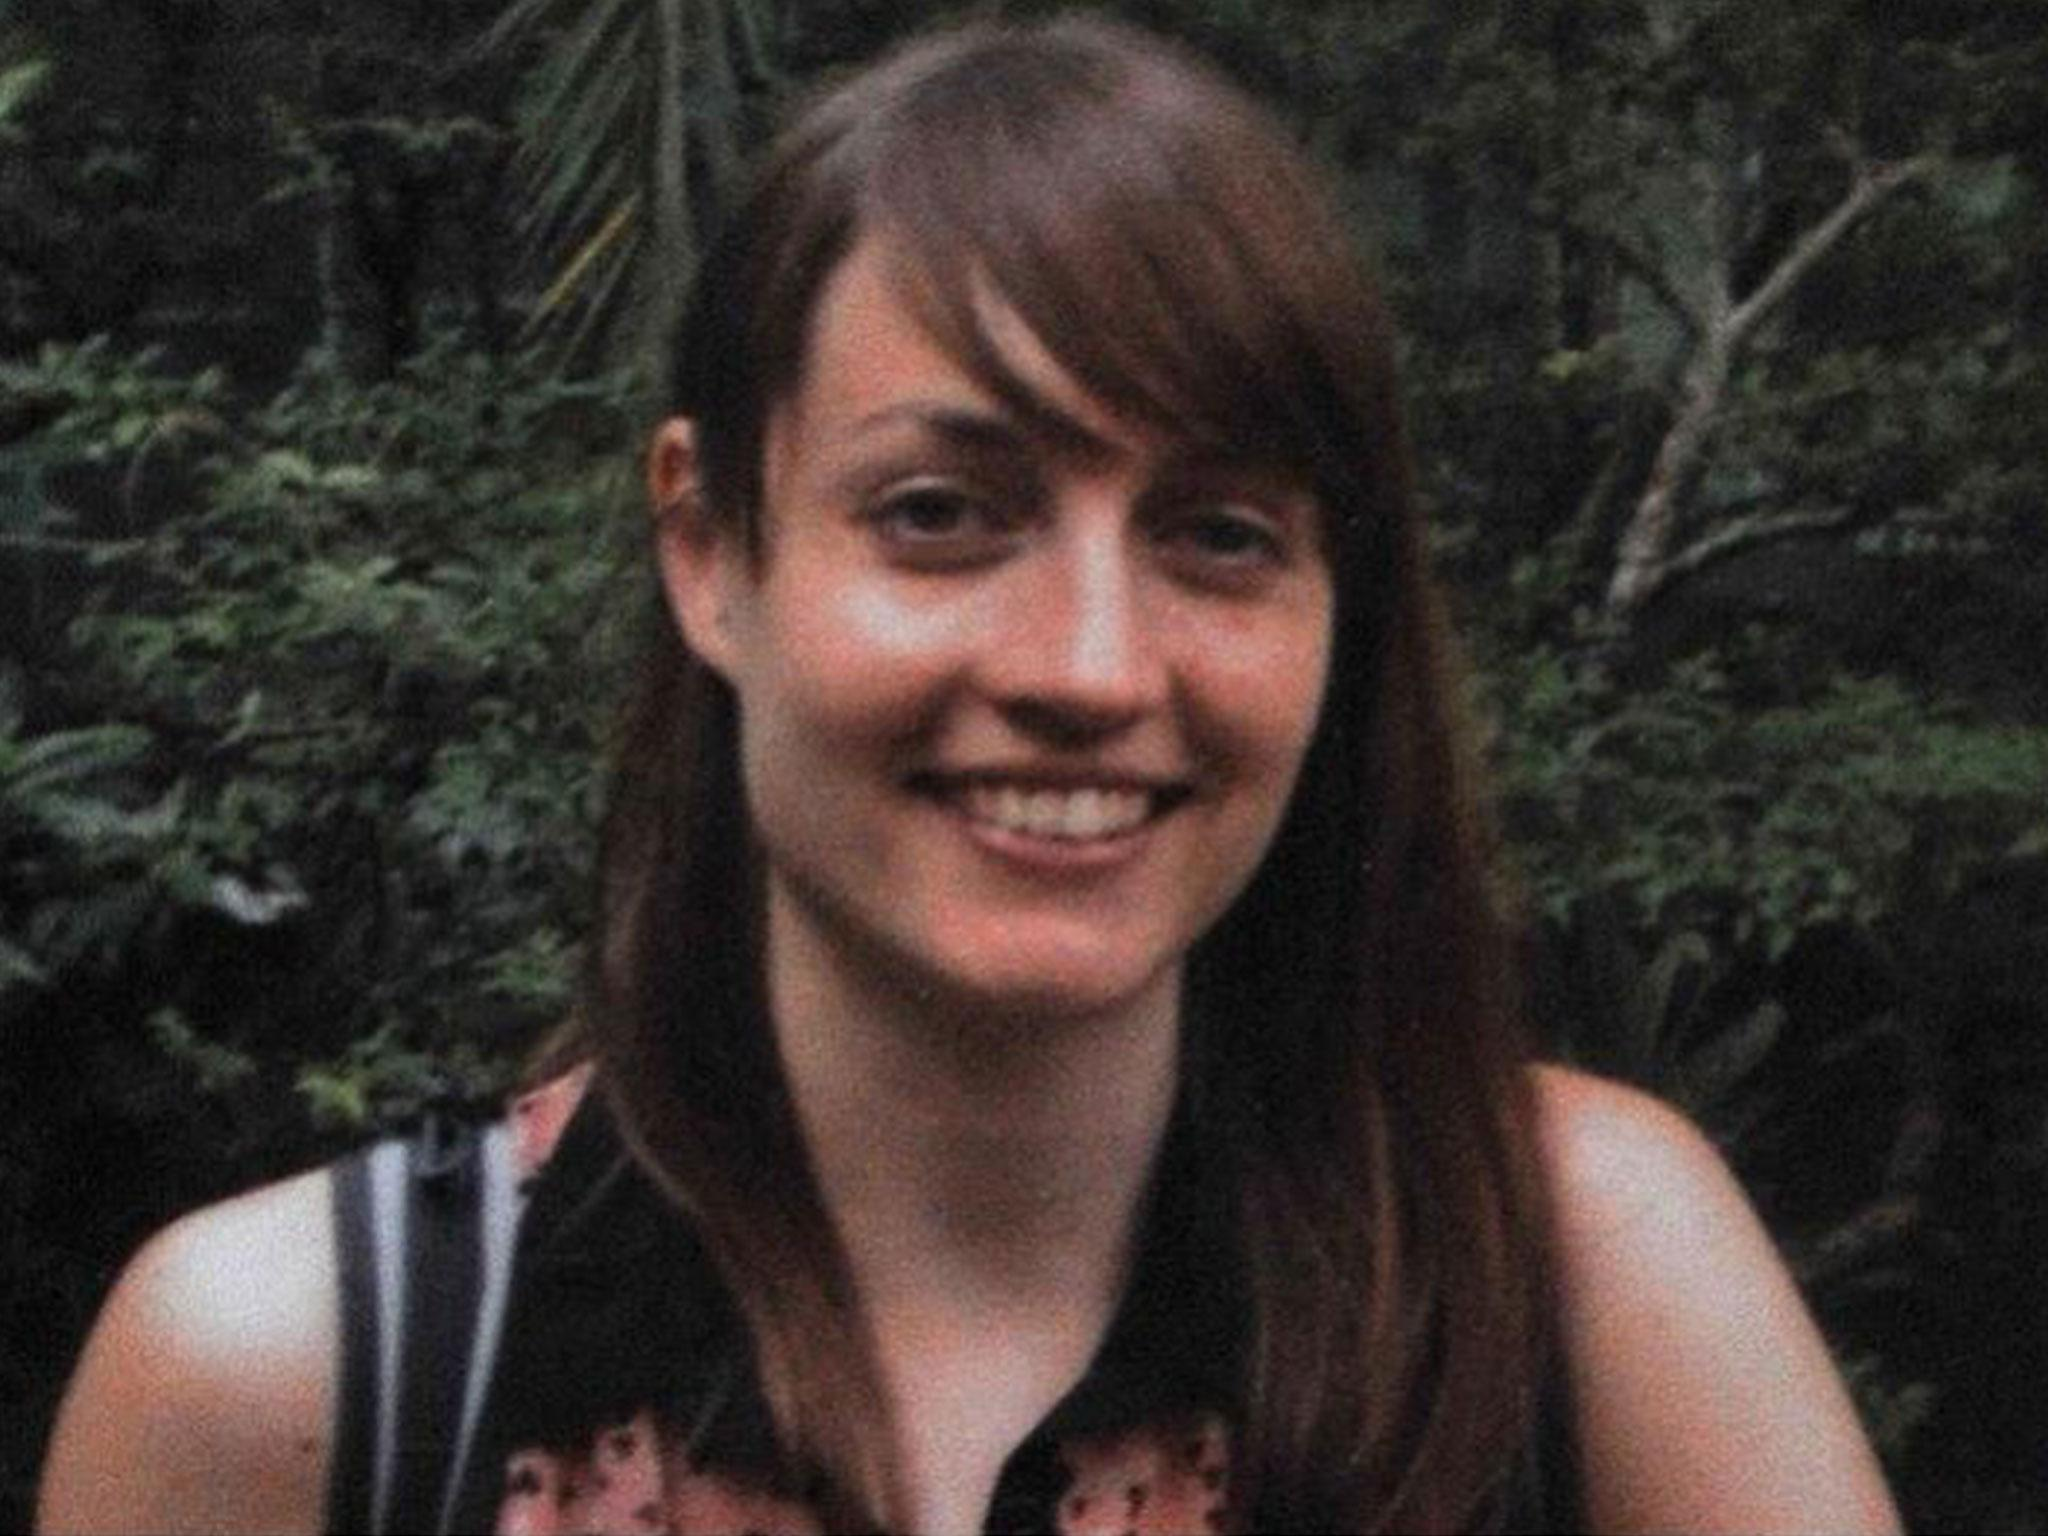 Mother of teacher who died blames stress and anxiety piled on by 'extreme' workload